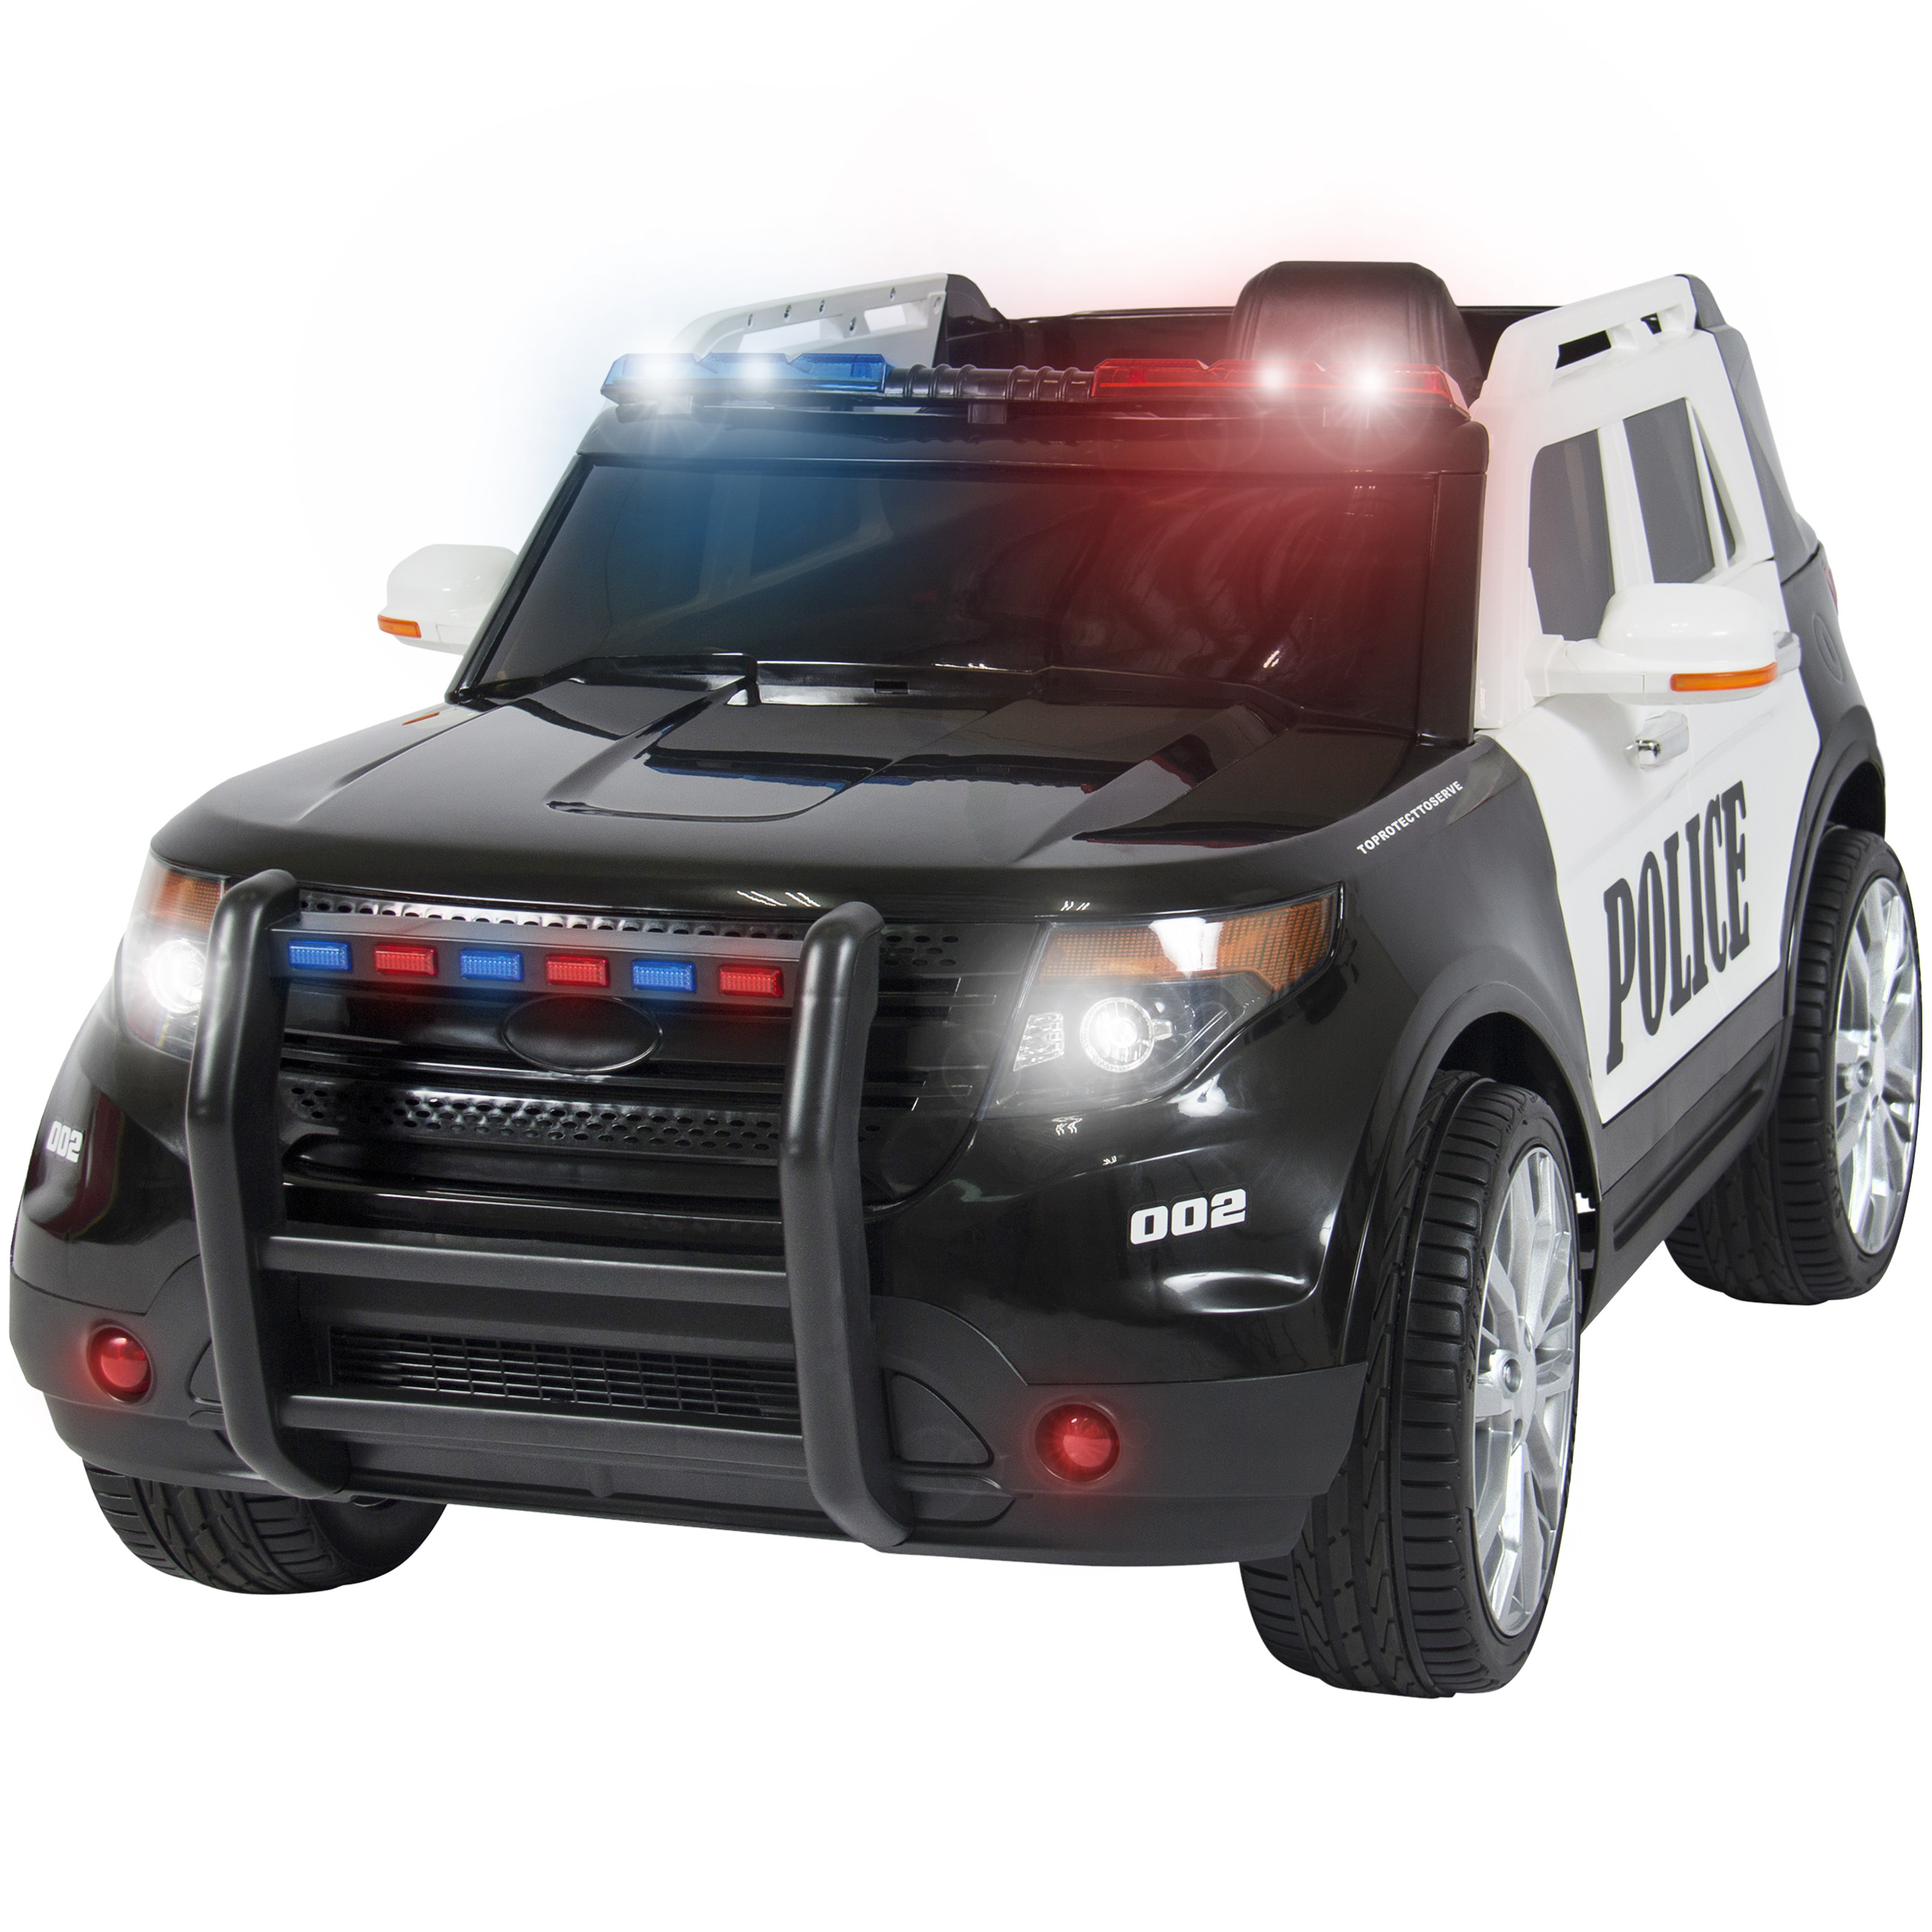 Best Choice Products 12V Ride On Car Police Car w  Remote Control, 2 Speeds, LED Lights by Best Choice Products